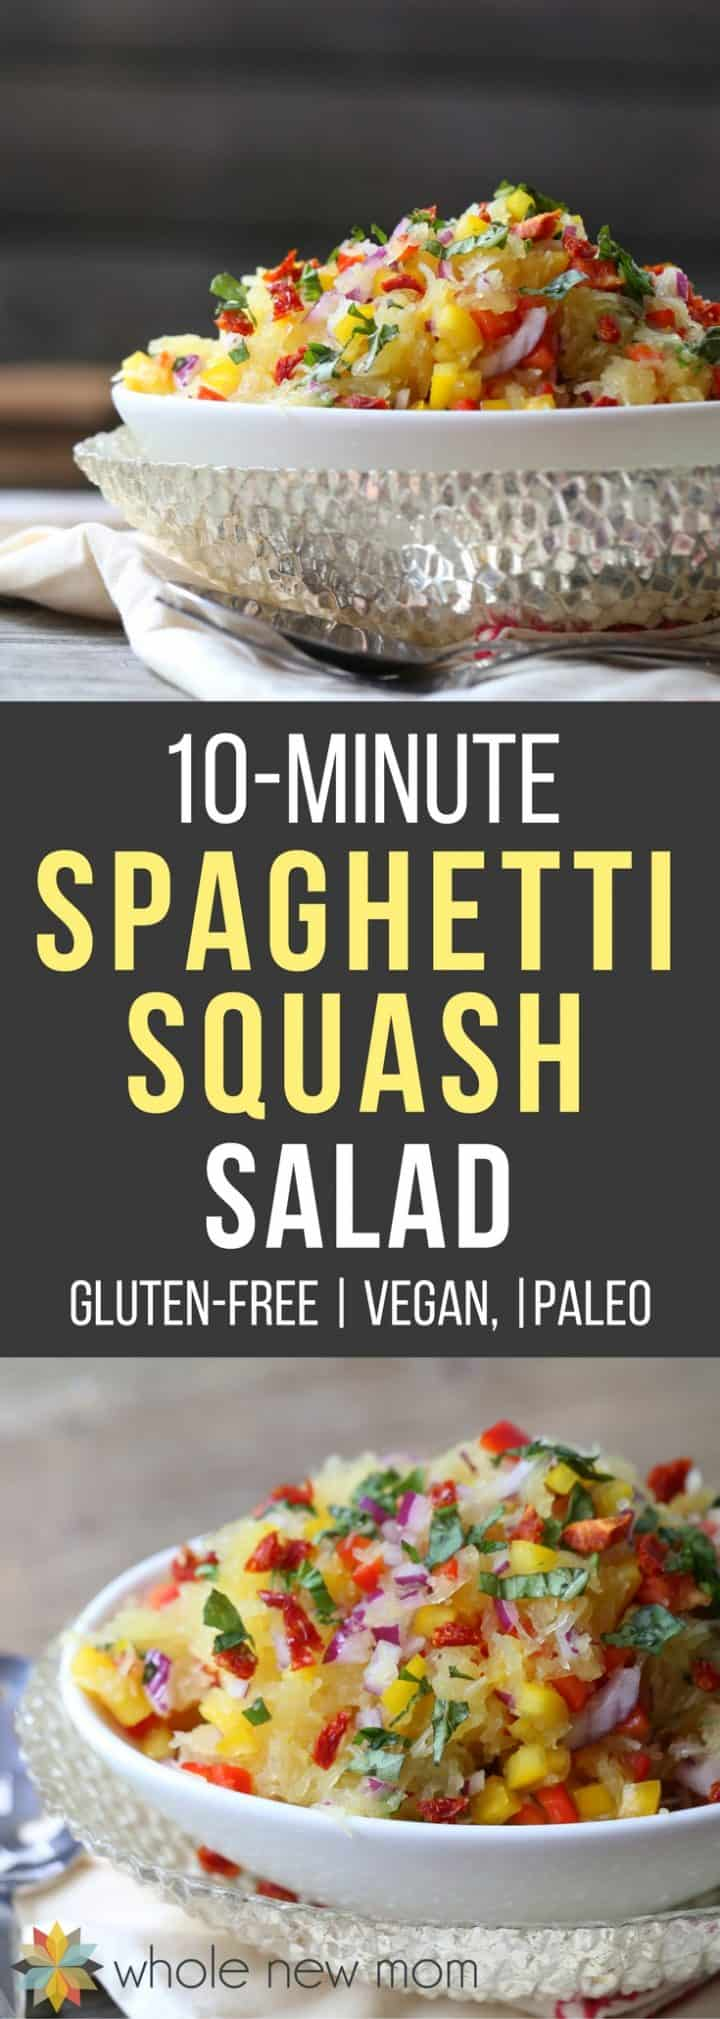 A tangy dressing coats this Spaghetti Squash Salad for a easy healthy side dish that's allergy-friendly, low-carb, paleo, with AIP options.